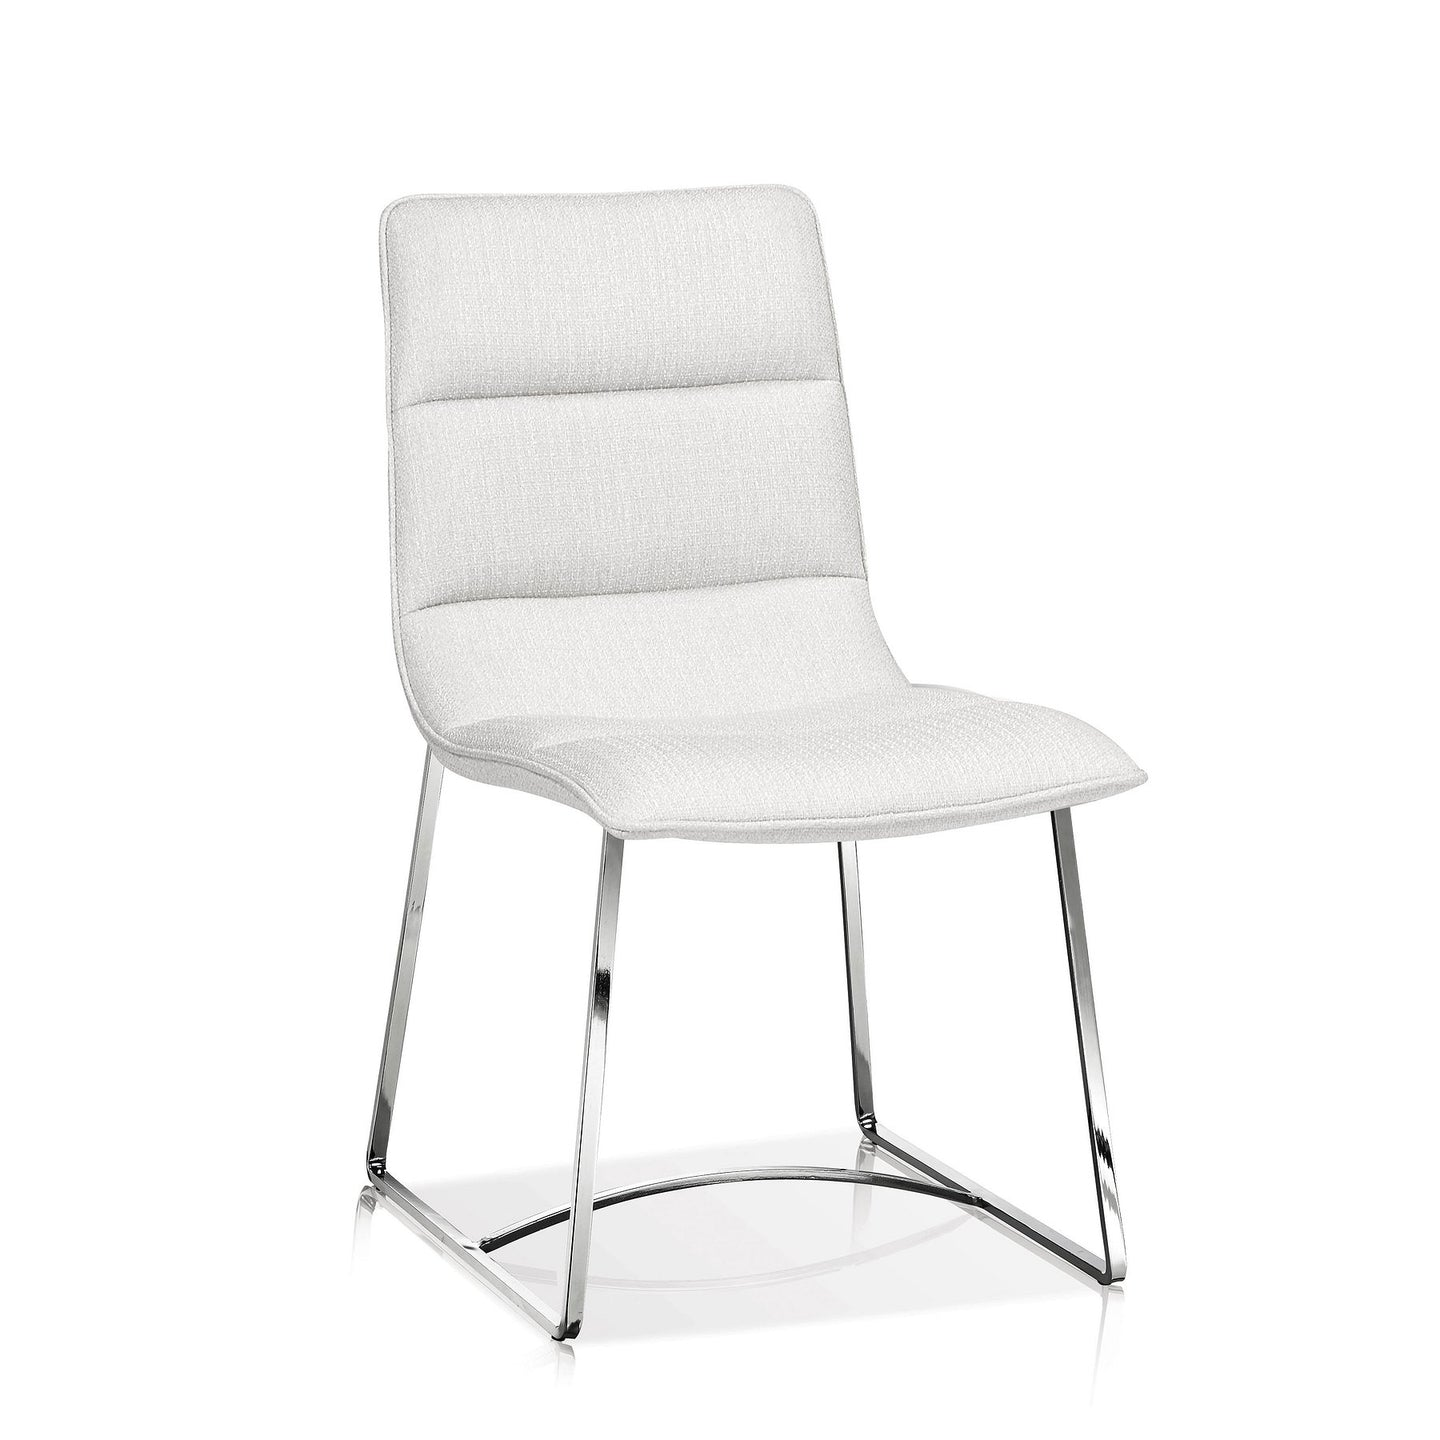 jaynice - dining chair - Dining